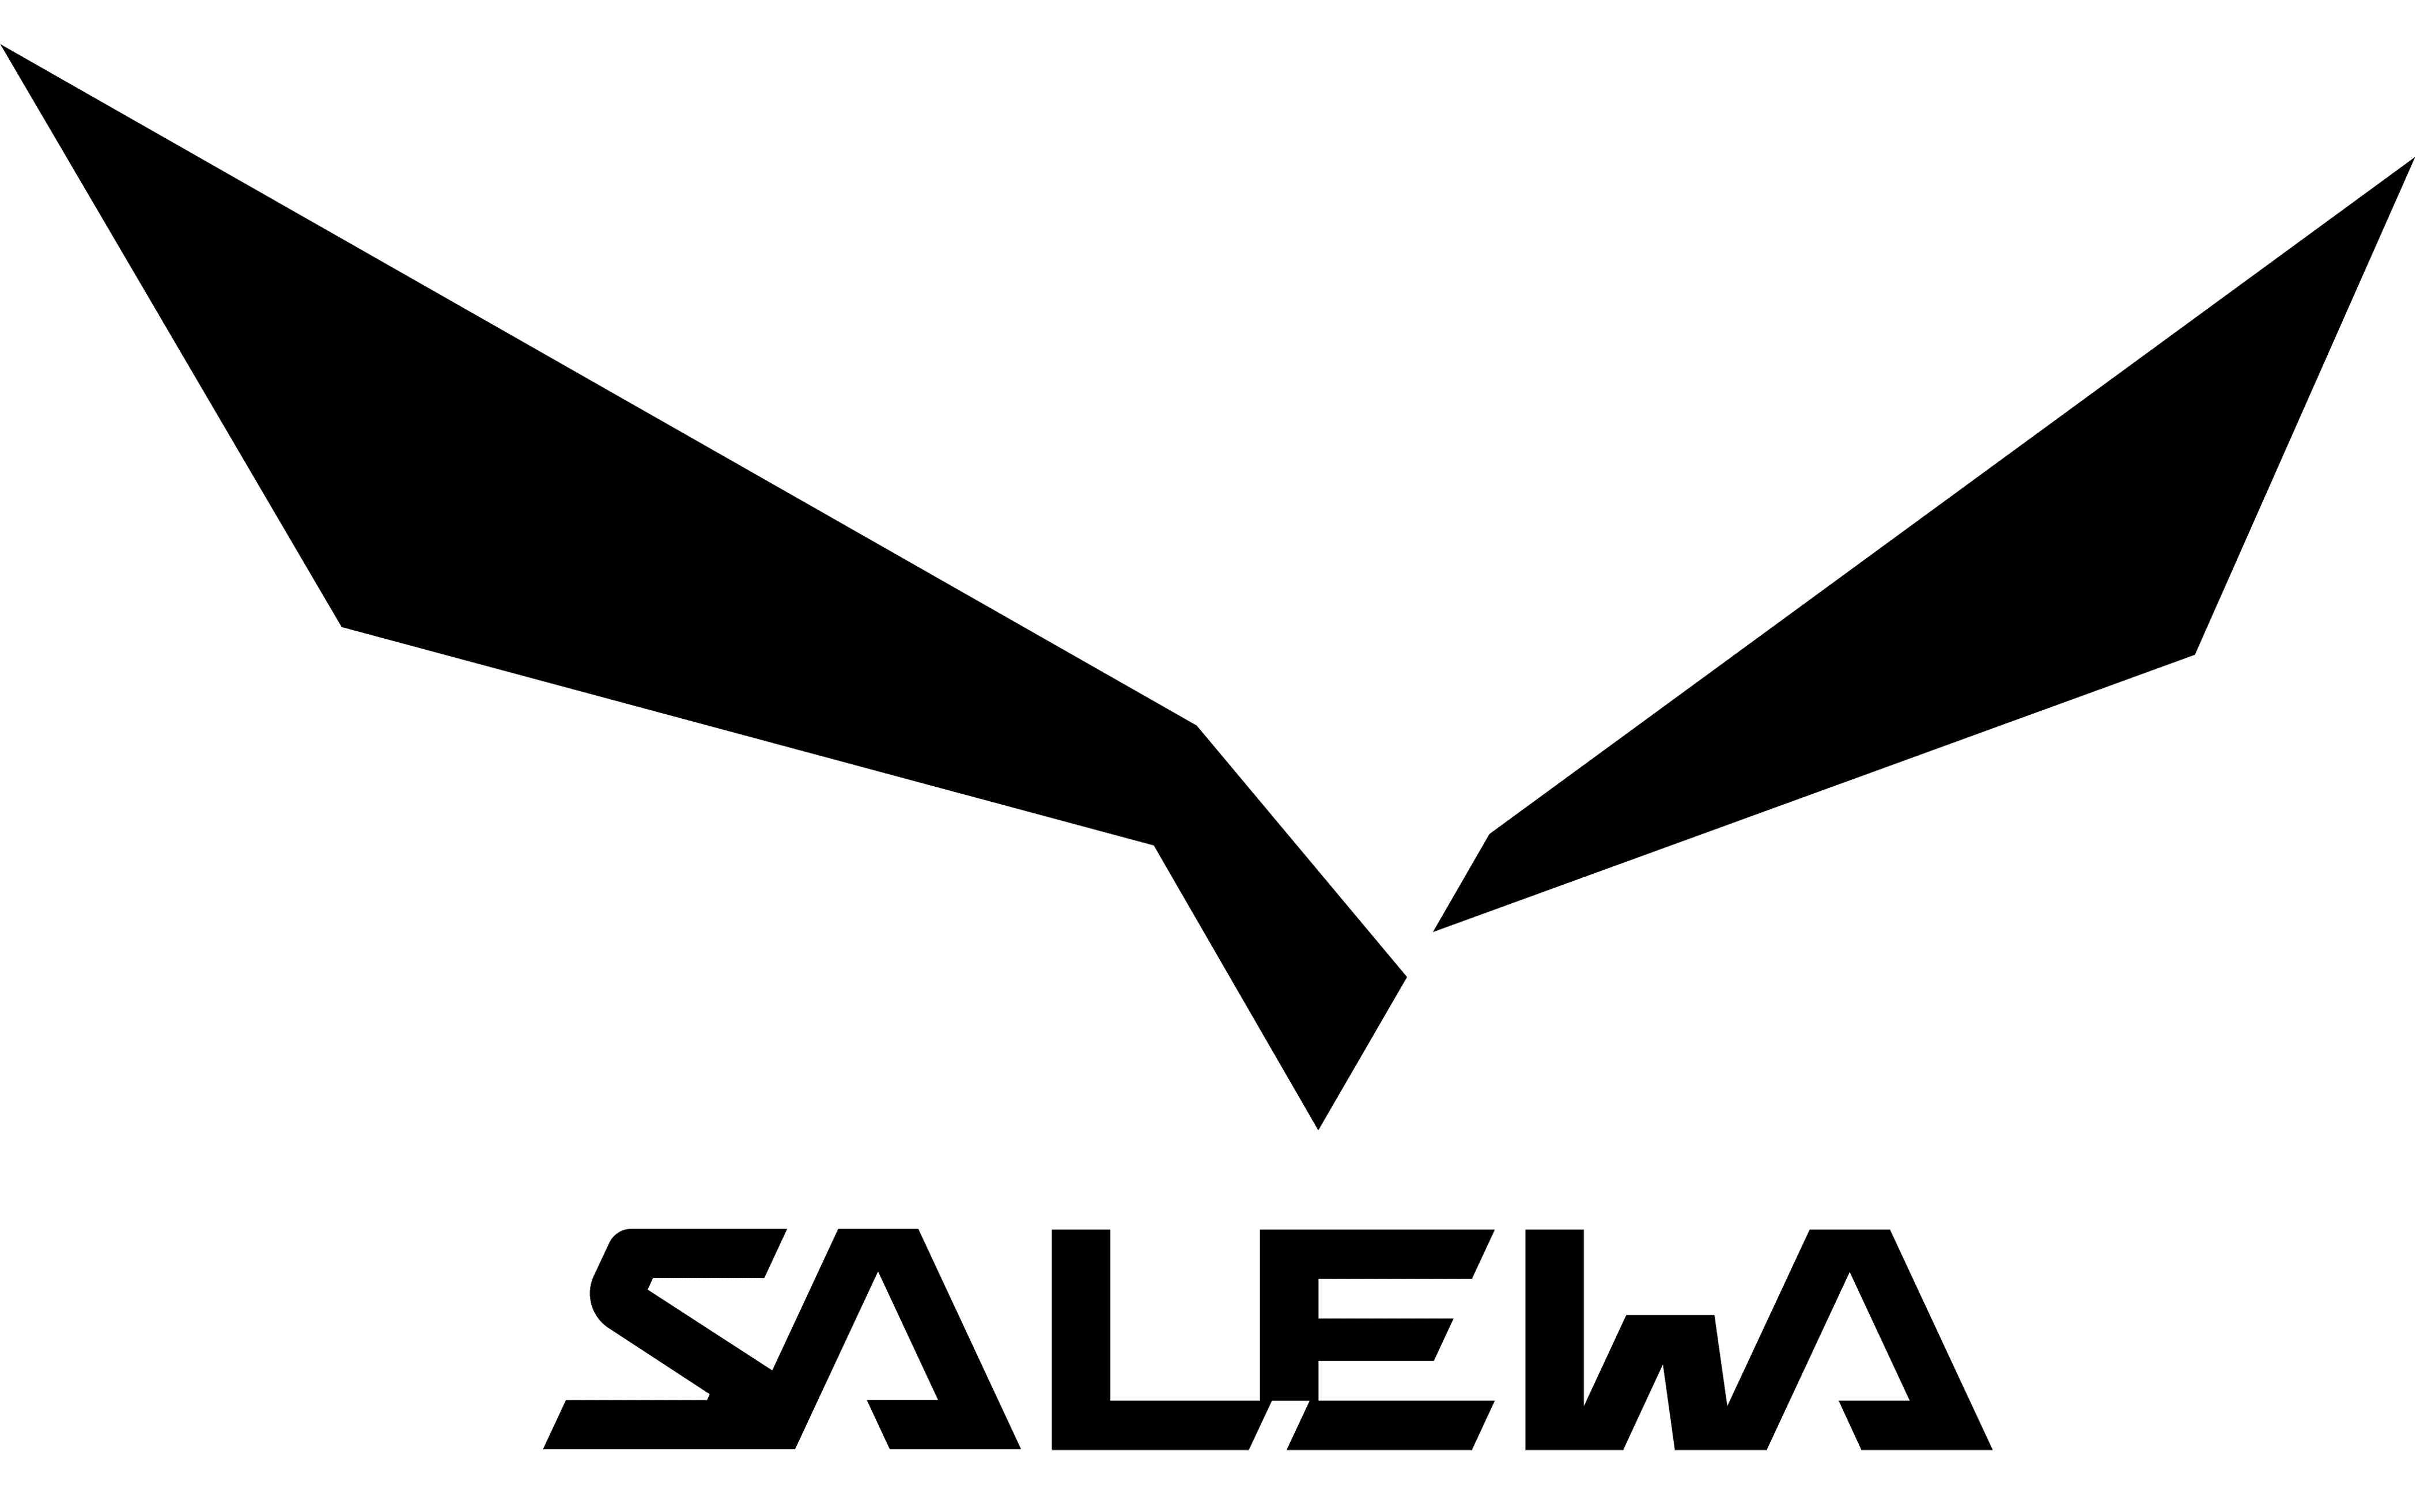 Salewa logo and symbol, meaning, history, PNG